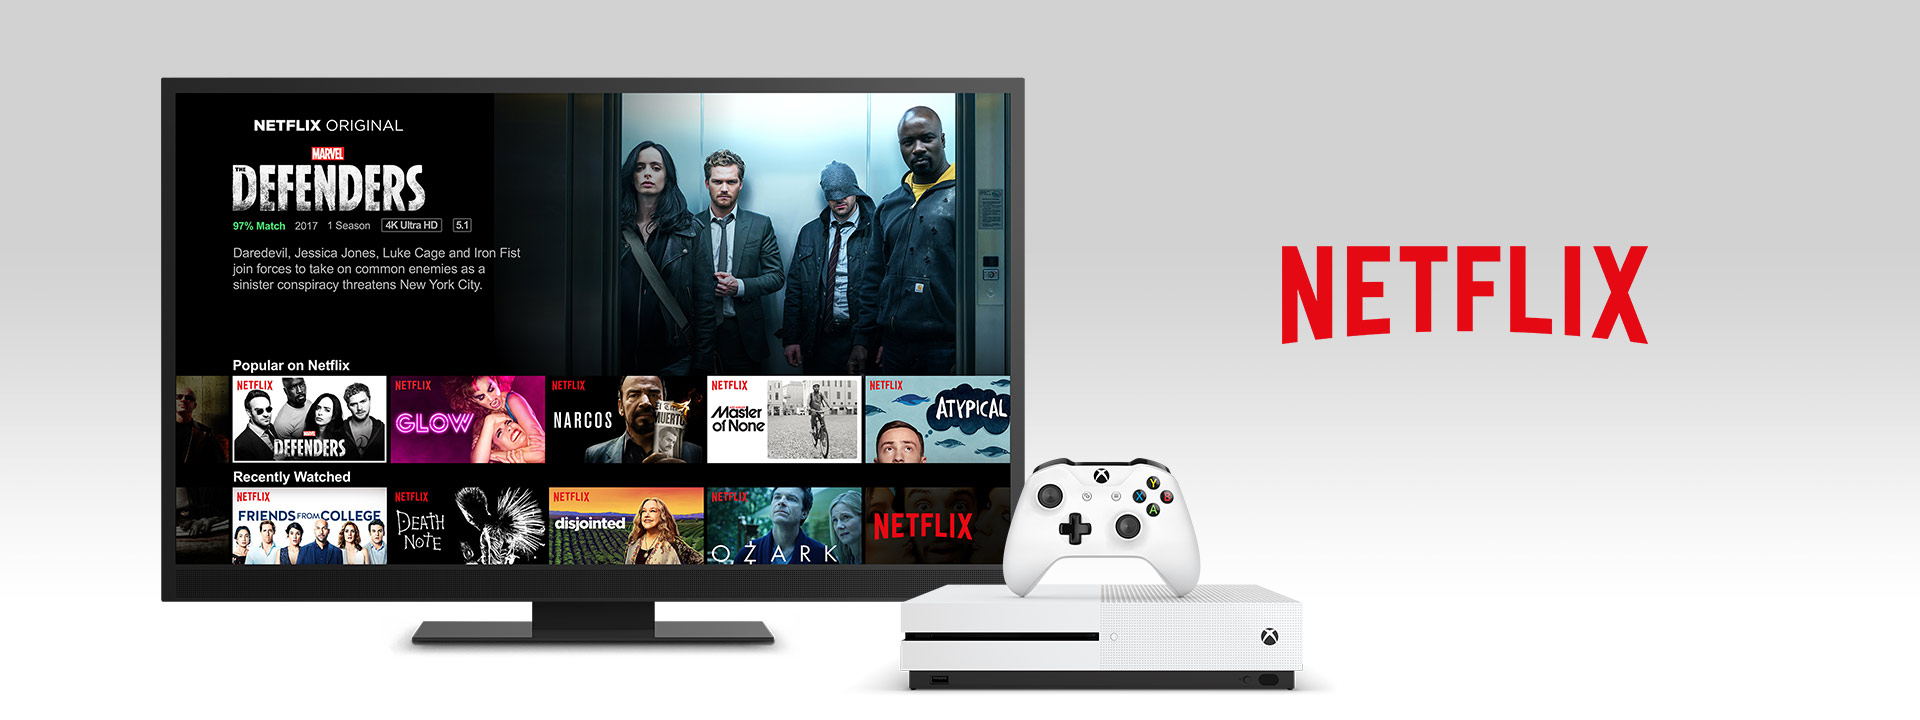 Netflix on an Xbox One